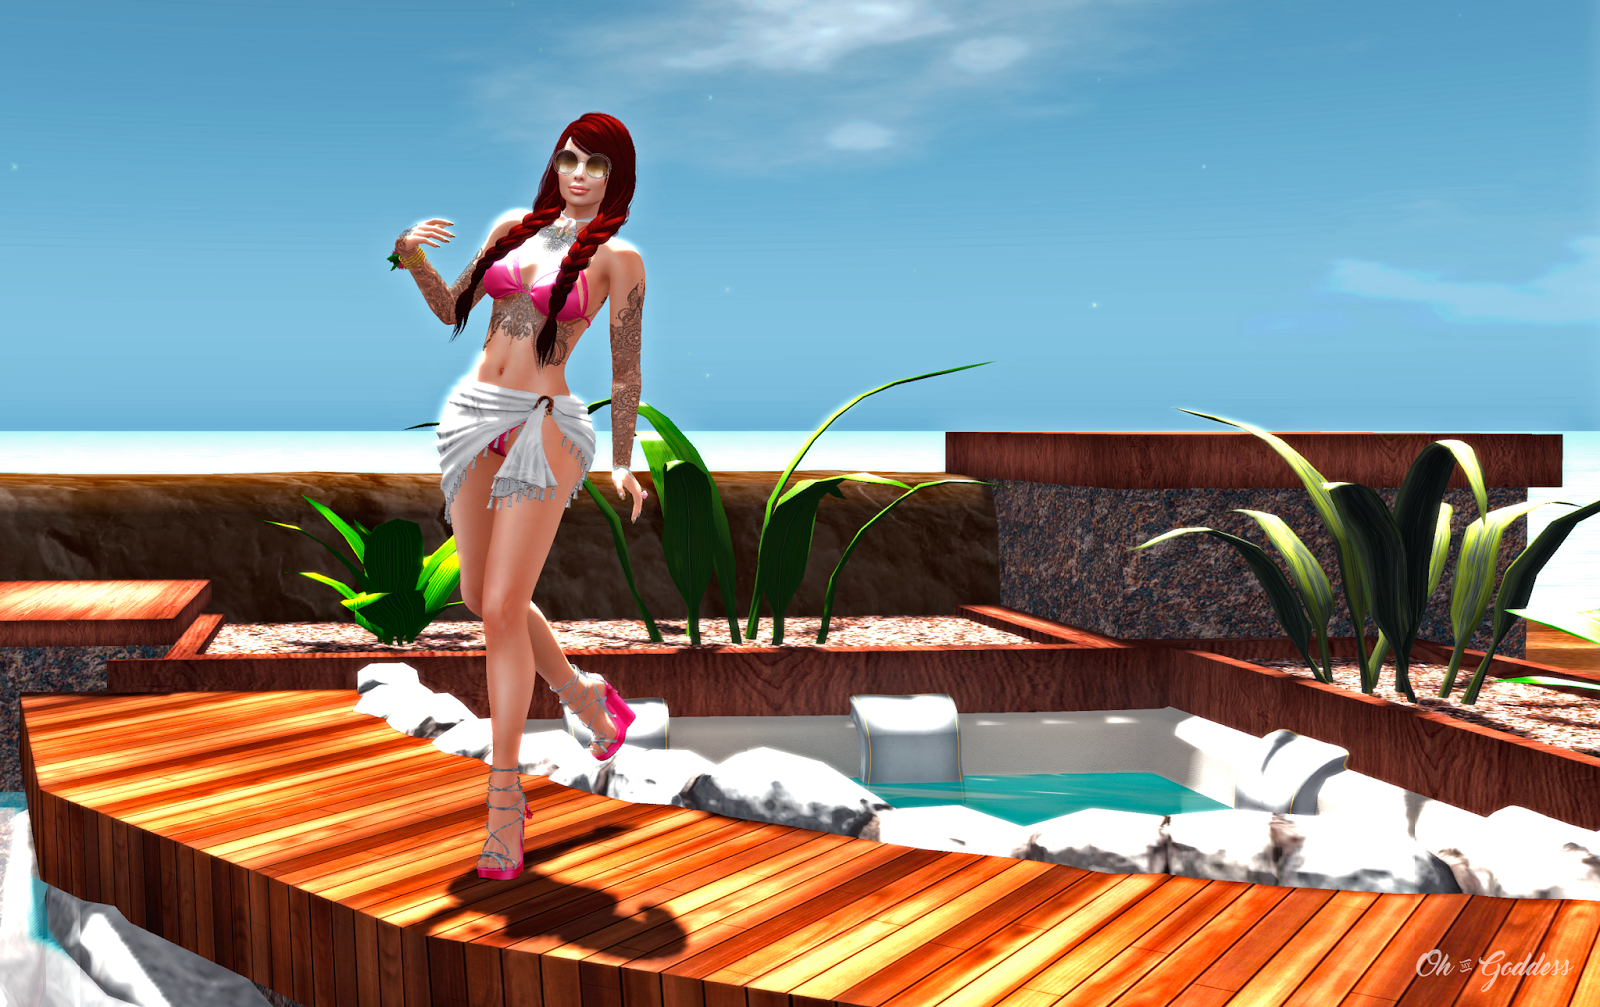 Second Life Fashion Blog: Pool Party Outfit - OhMyGoddess